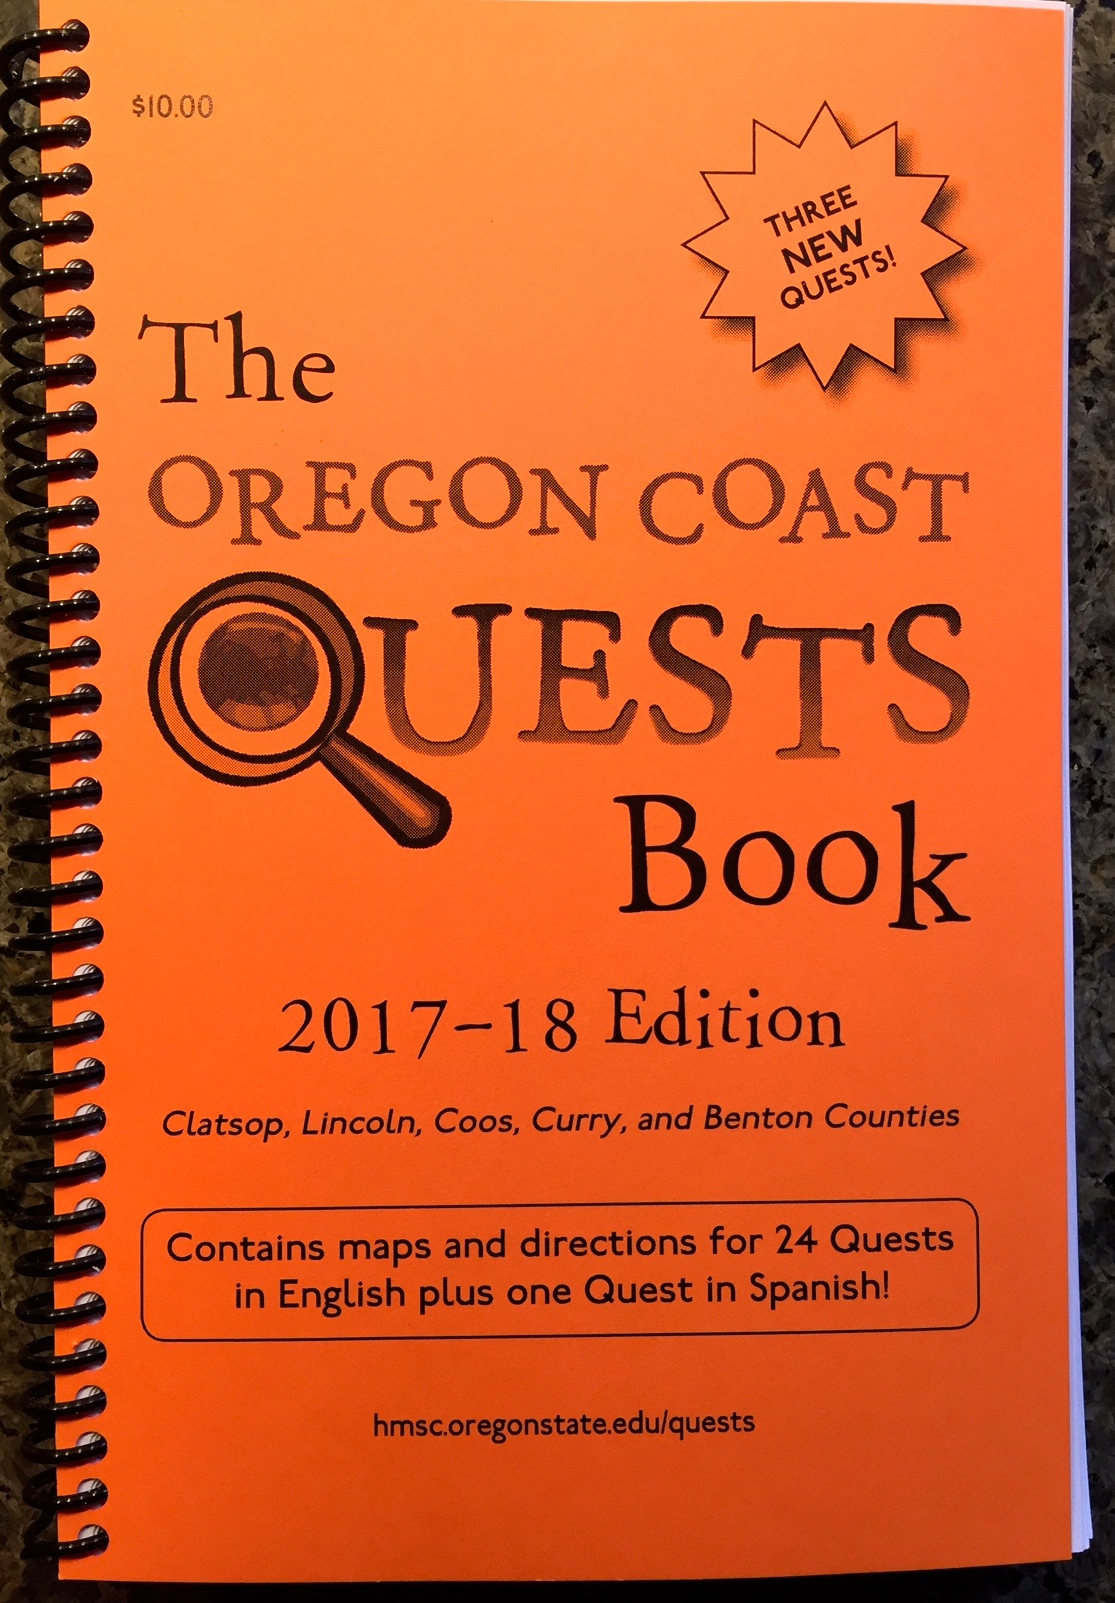 Quest Book Sellers | Hatfield Marine Science Center | Oregon